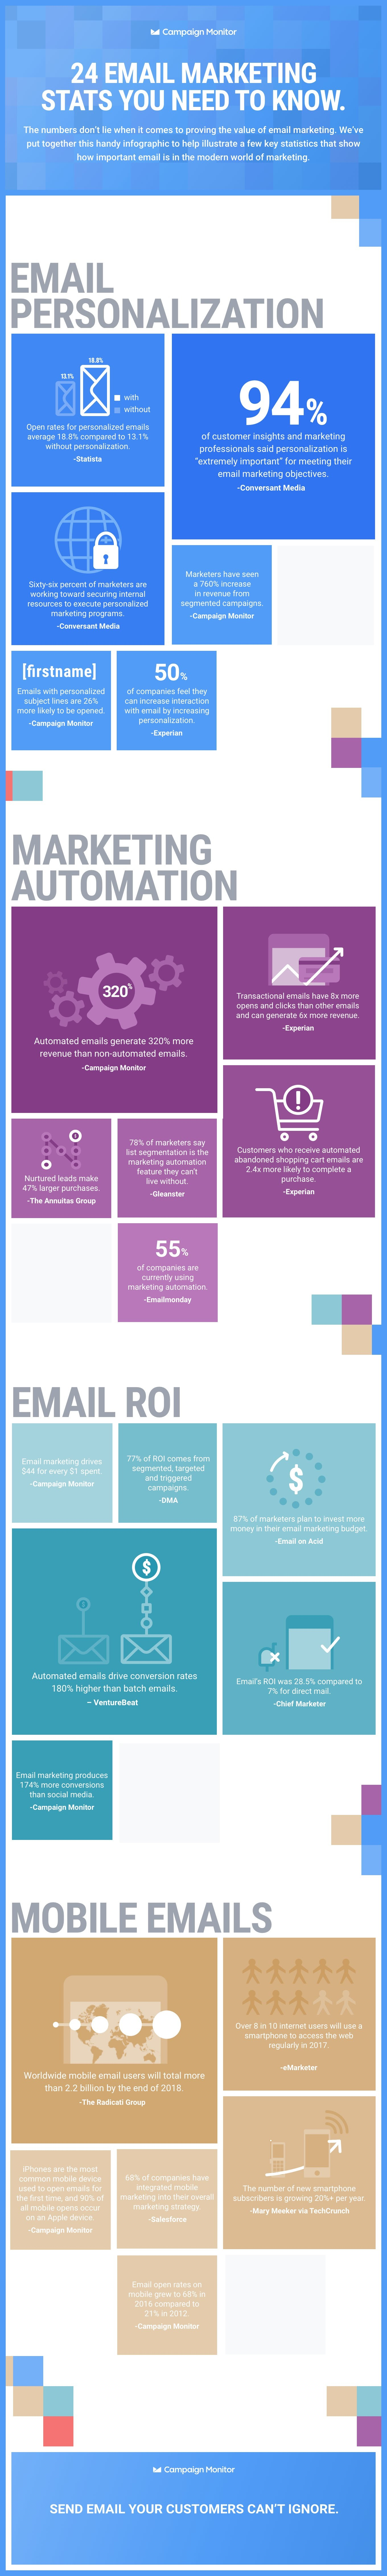 24 Email Marketing Stats You Need to Know [Infographic]